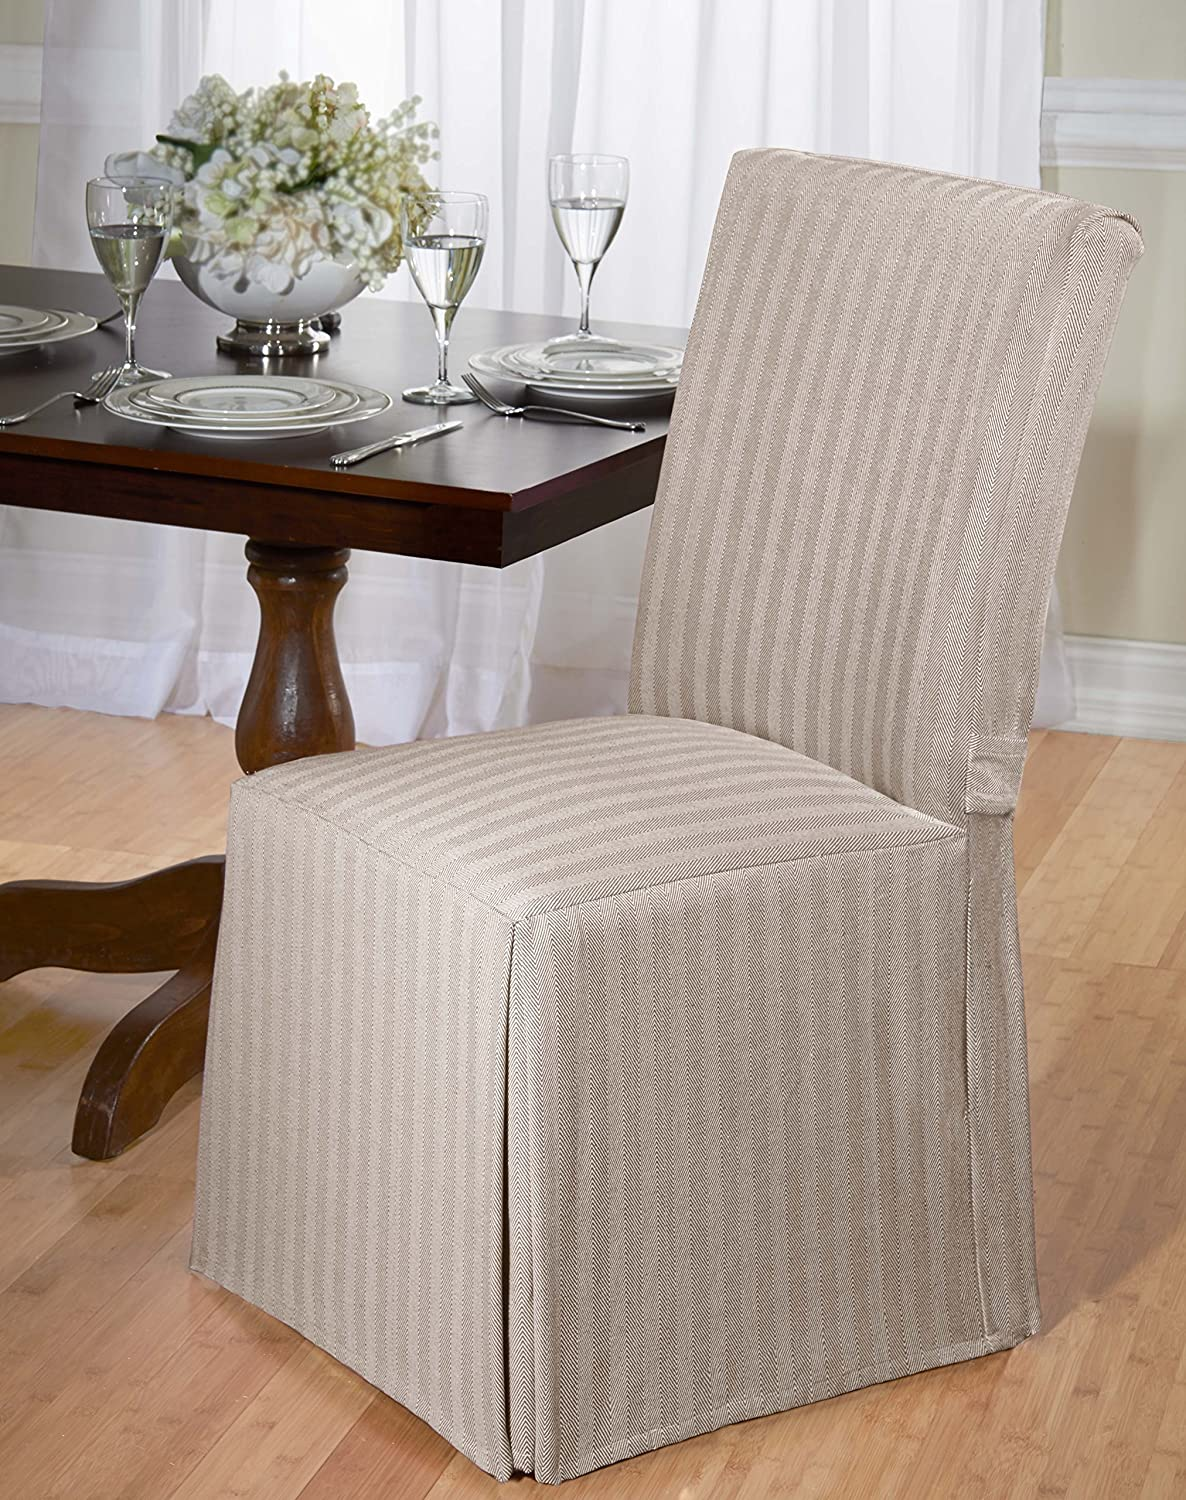 Luxurious Dining Chair Cover, Herringbone, Beige, Grey, and Red grey red beige blue embroidery logo car seat cover front